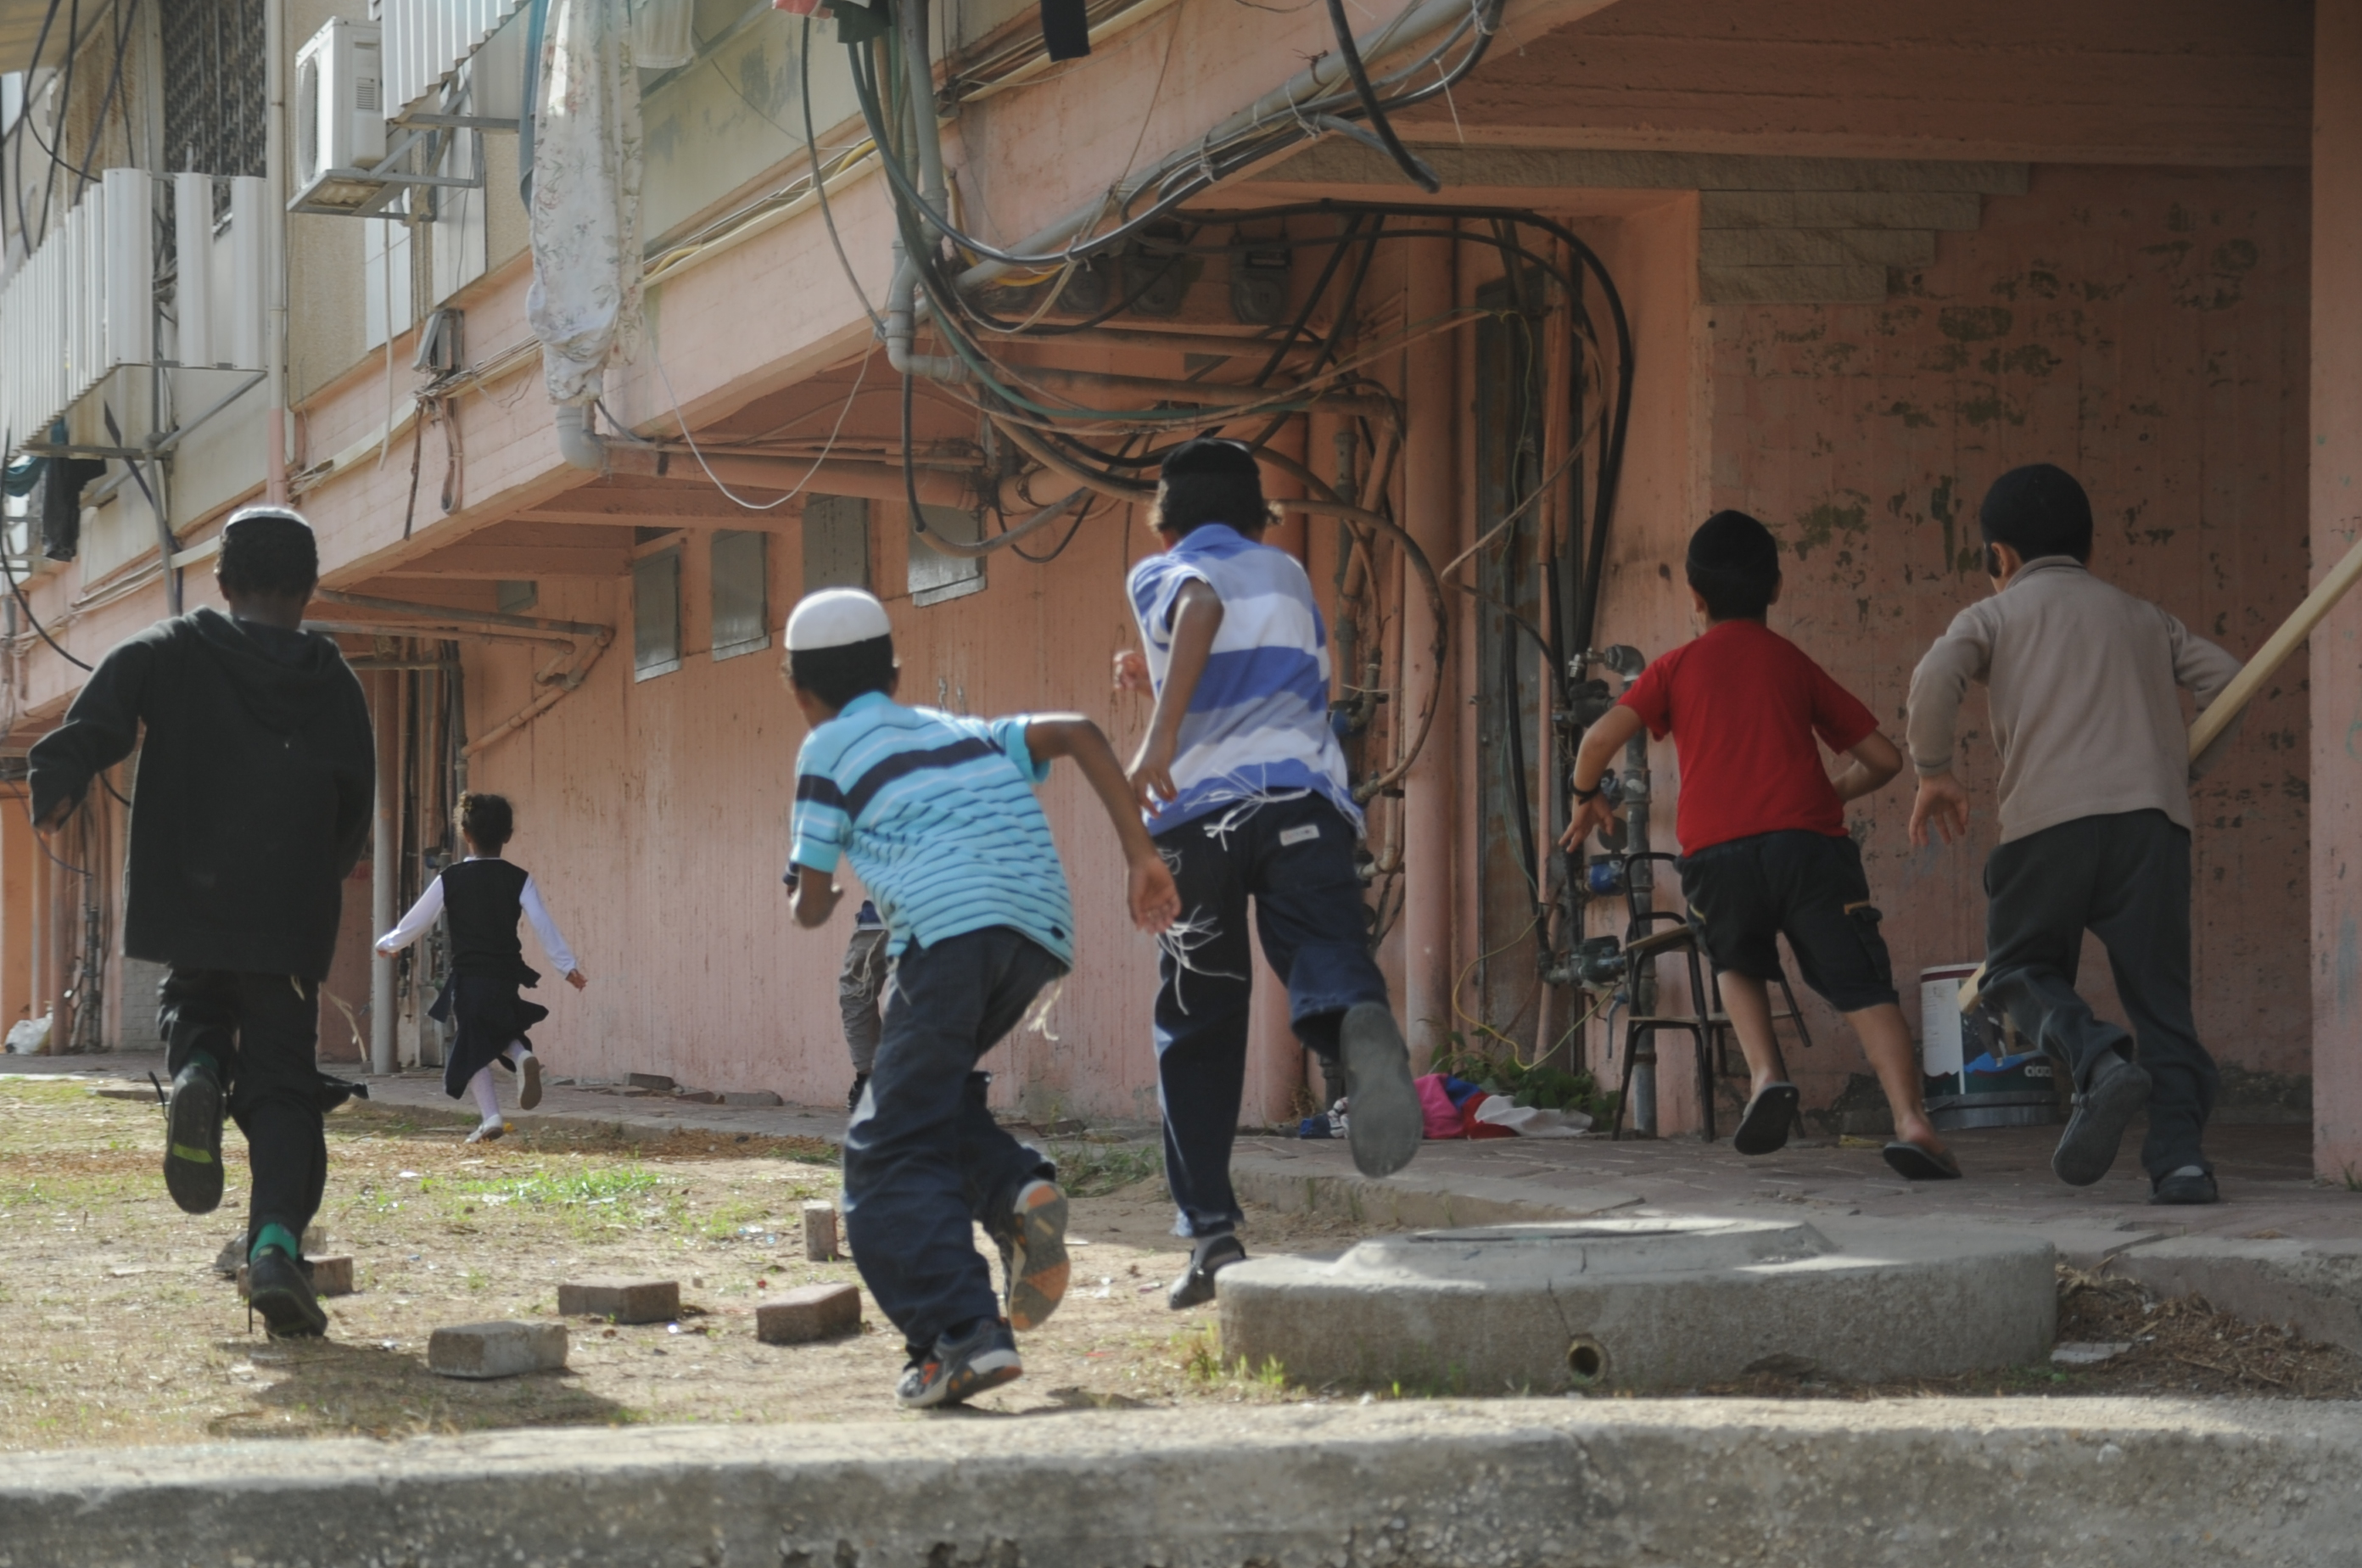 File:Flickr - Israel Defense Forces - Children in Town Under Fire by  Rockets from Gaza (3).jpg - Wikimedia Commons